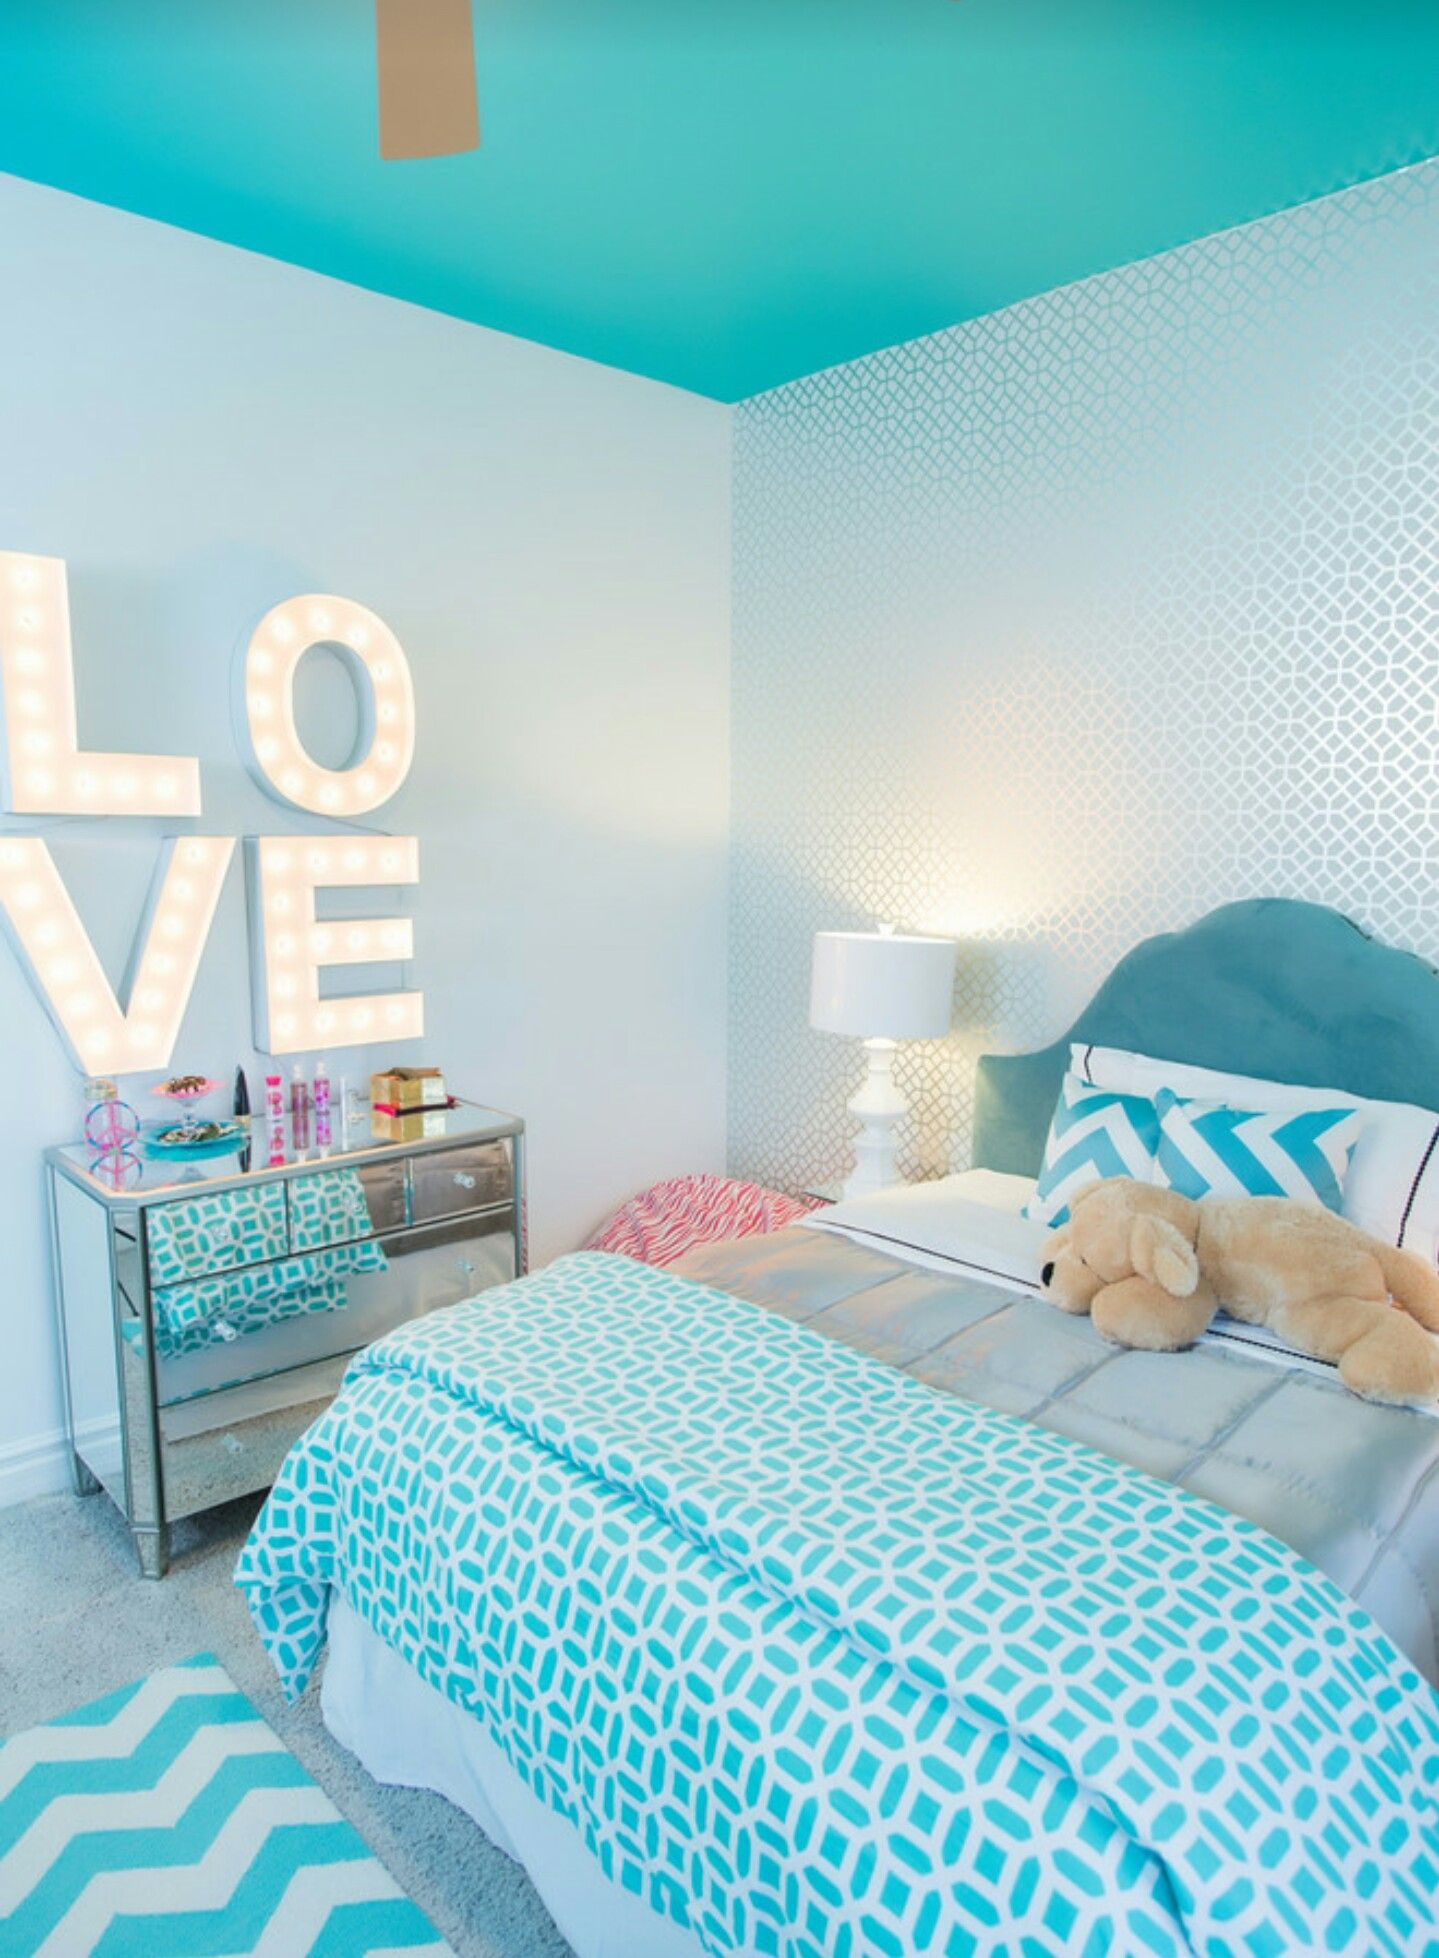 51 Stunning Turquoise Room Ideas To Freshen Up Your Home Komnatnye Idei Devchachi Komnaty Biryuzovye Komnaty